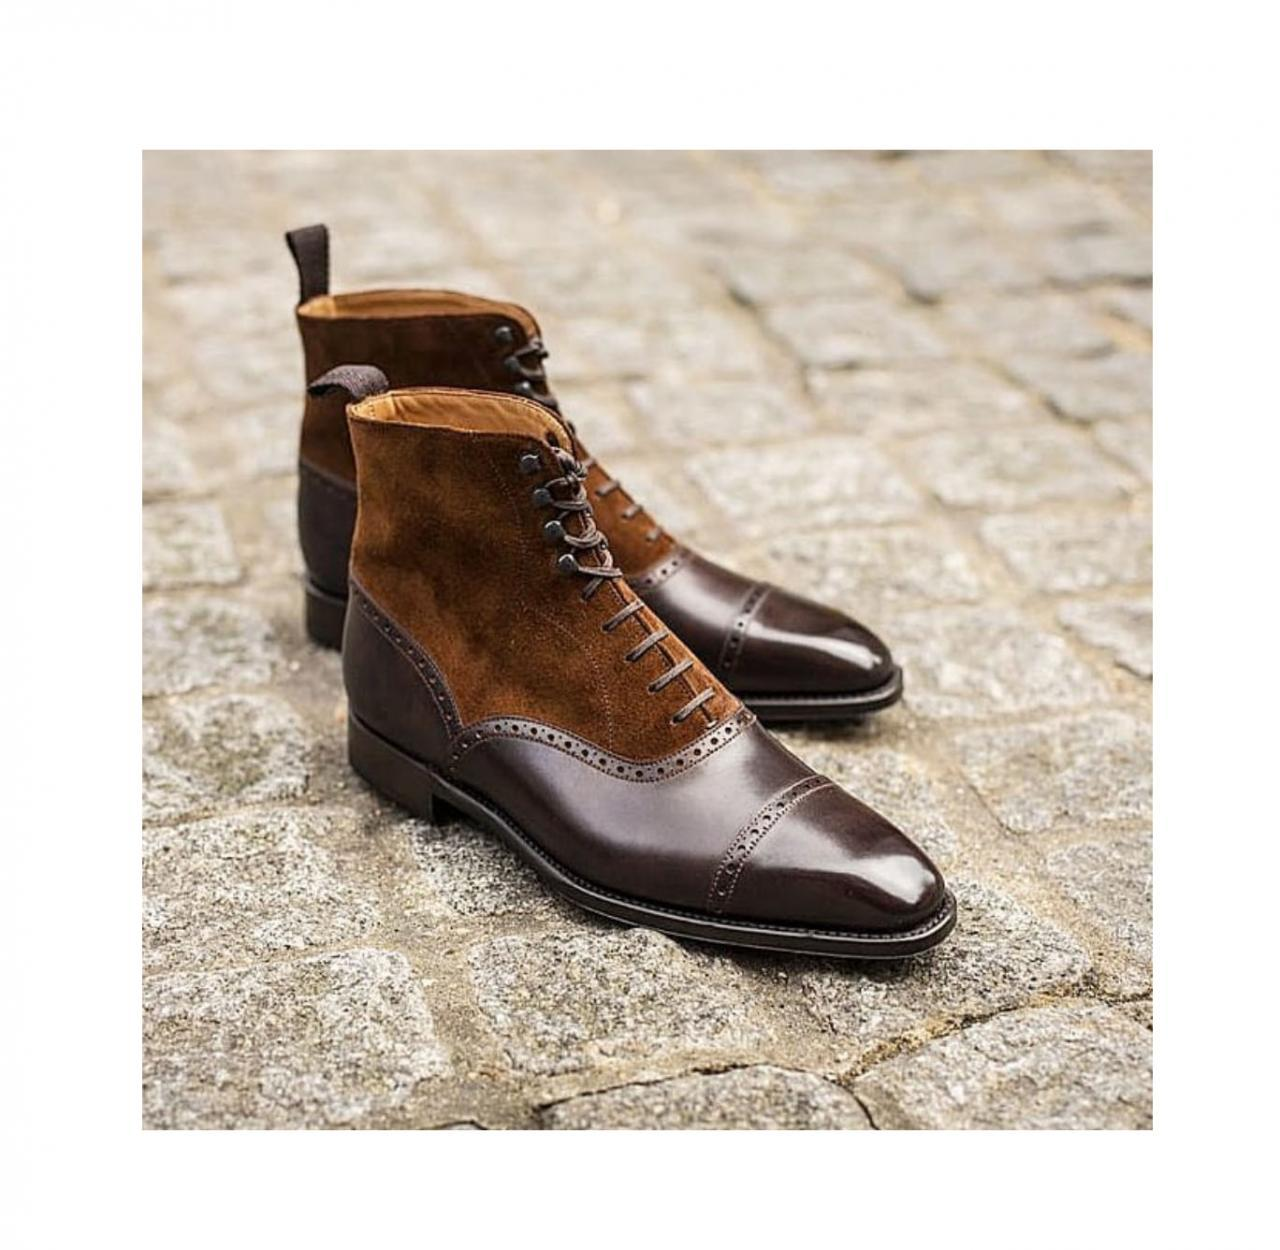 Primary image for Handmade Men's Brown Leather Suede High Ankle Lace Up Dress/Formal Boots